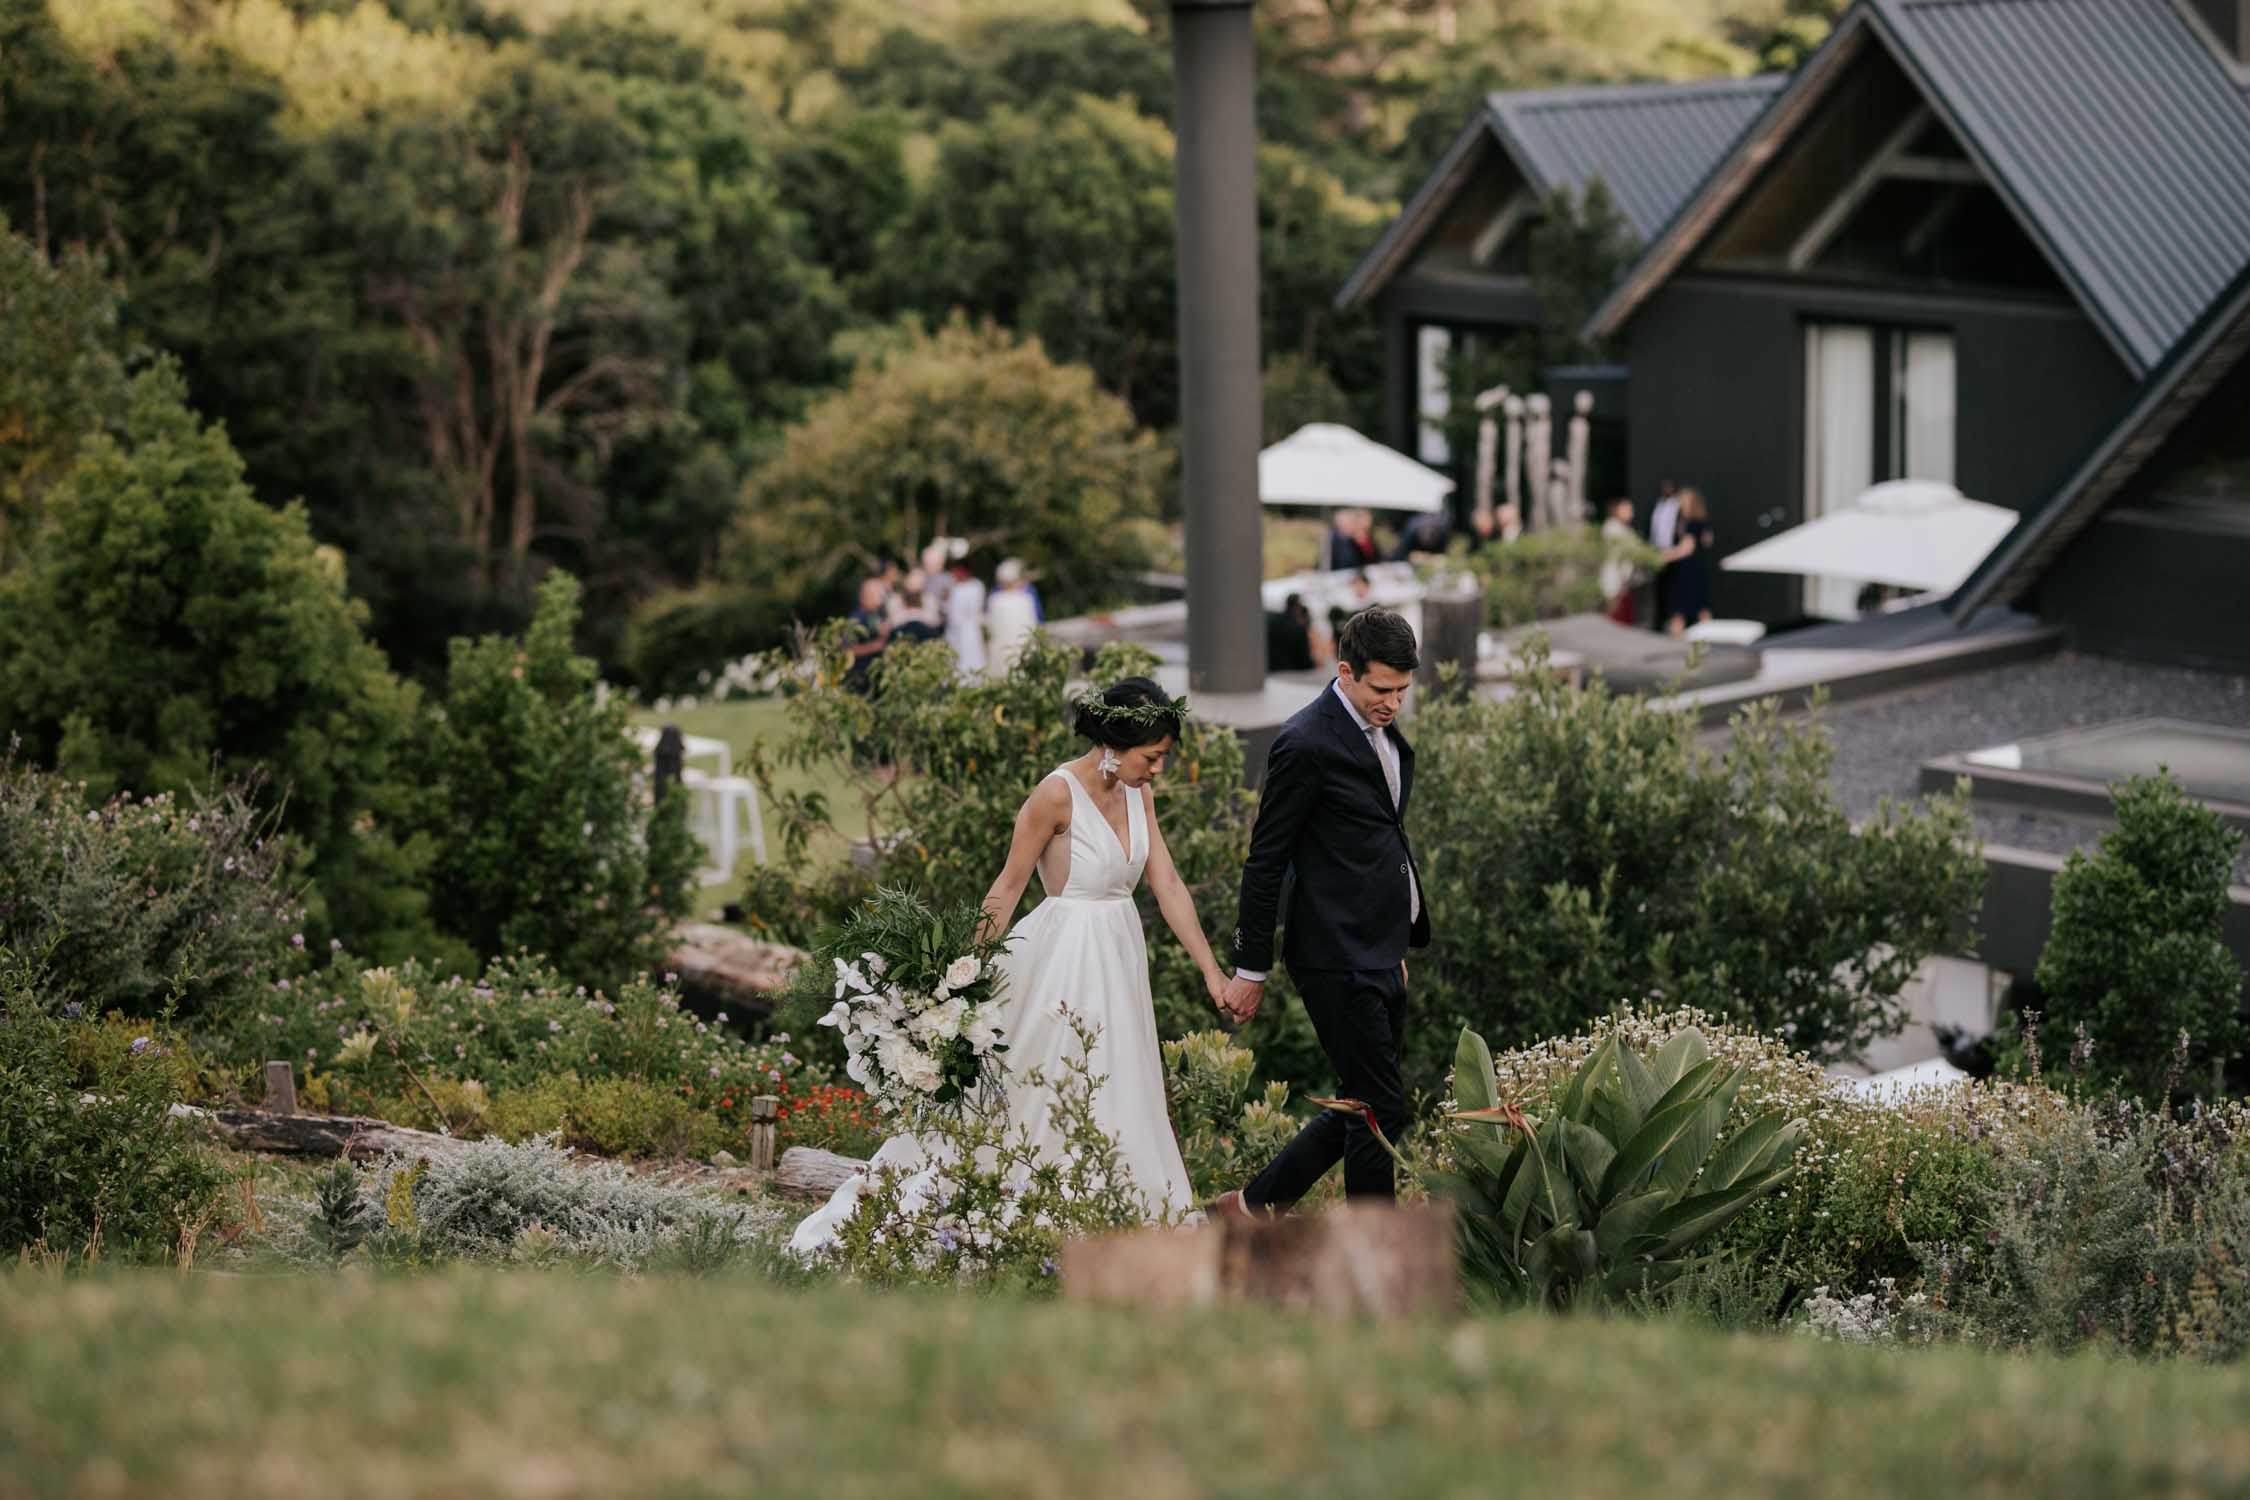 Bride And Groom Walking In Garden Hand In Hand